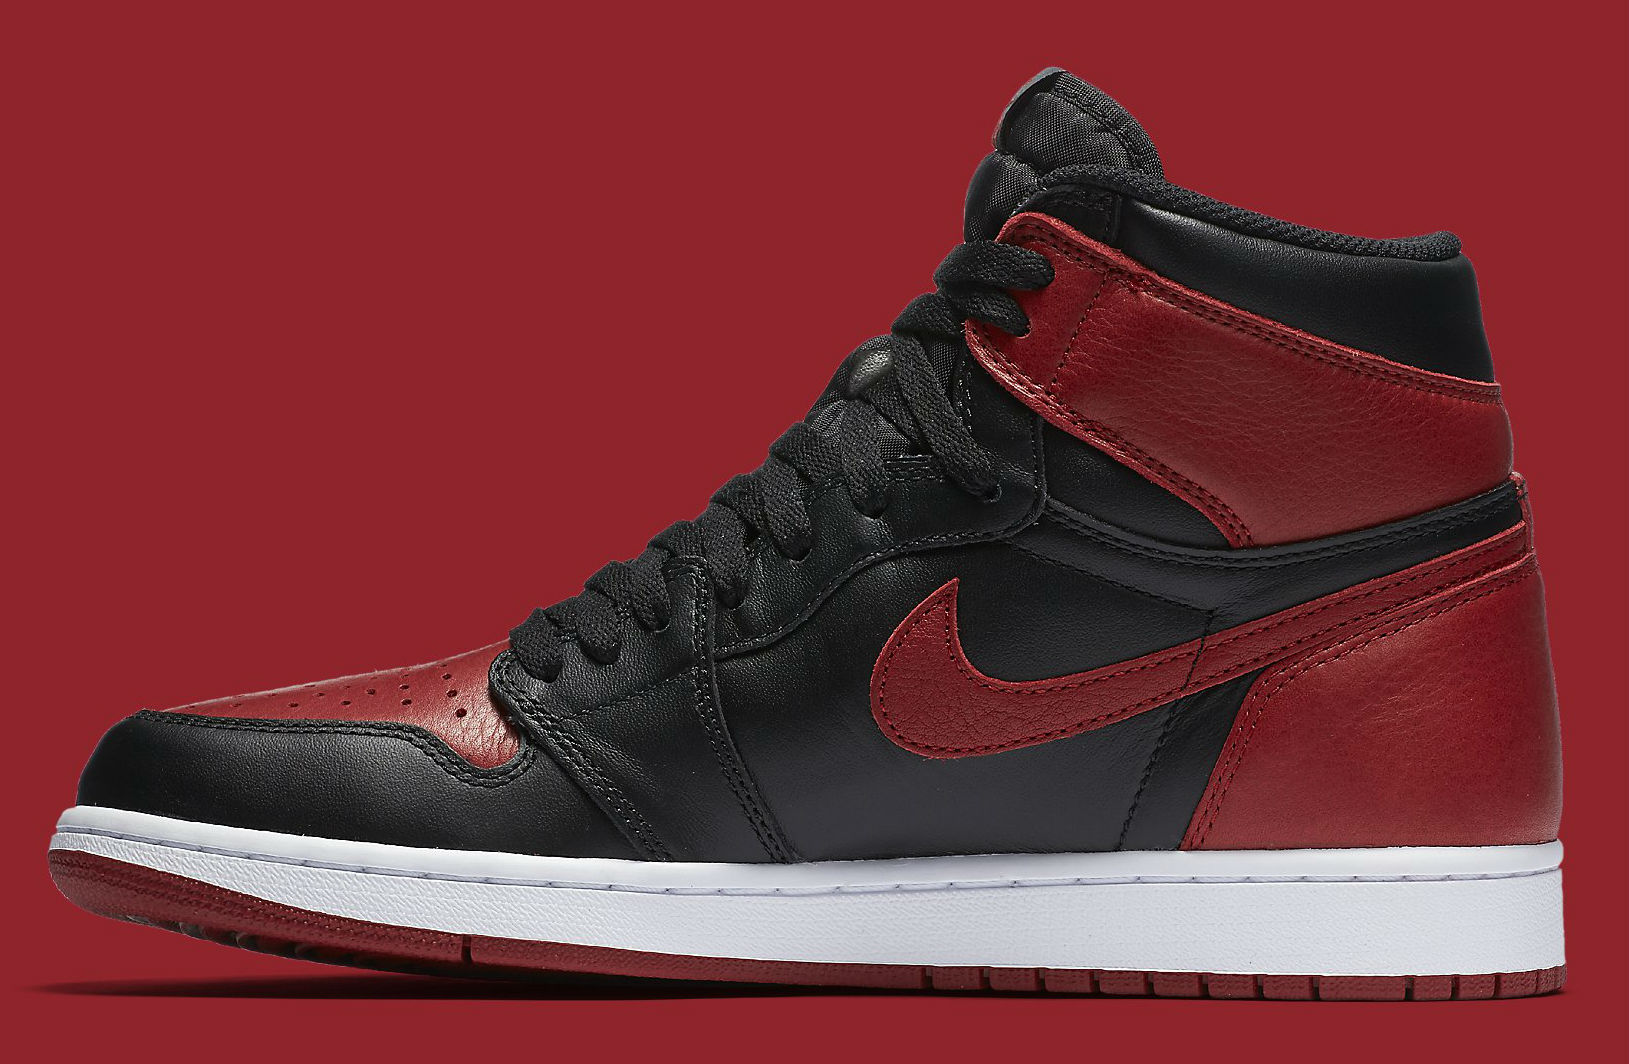 new product d68c8 a003f Air Jordan 1 Banned 555088-001 | Sole Collector